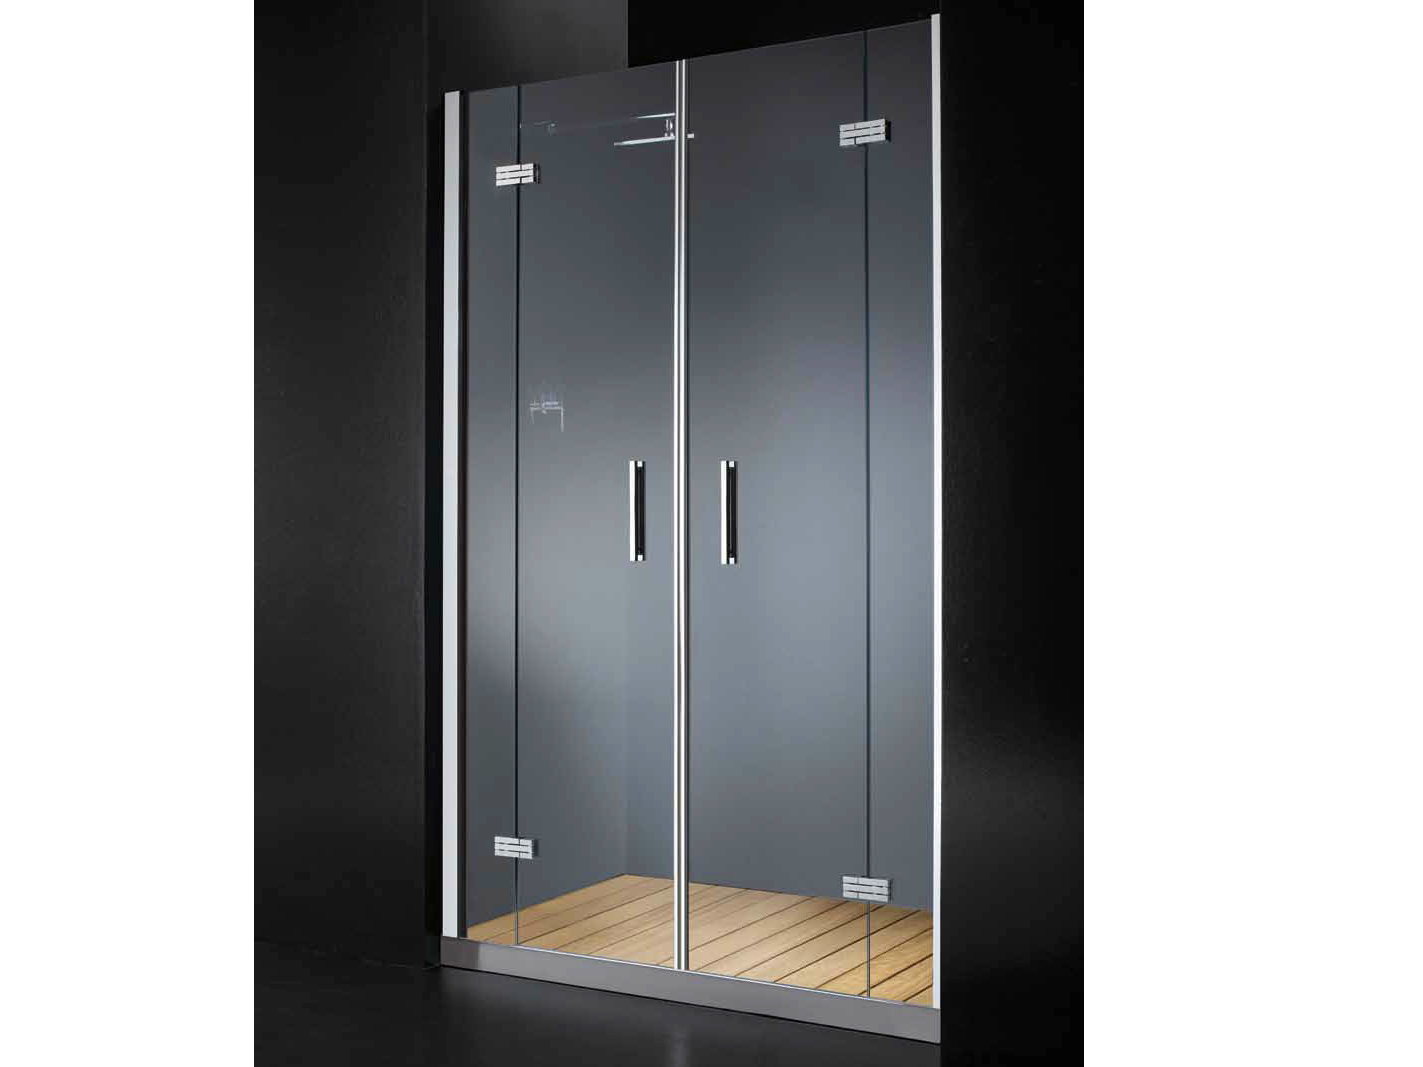 cabine de douche en niche en verre avec porte battante avec bac elite b10 by rare. Black Bedroom Furniture Sets. Home Design Ideas